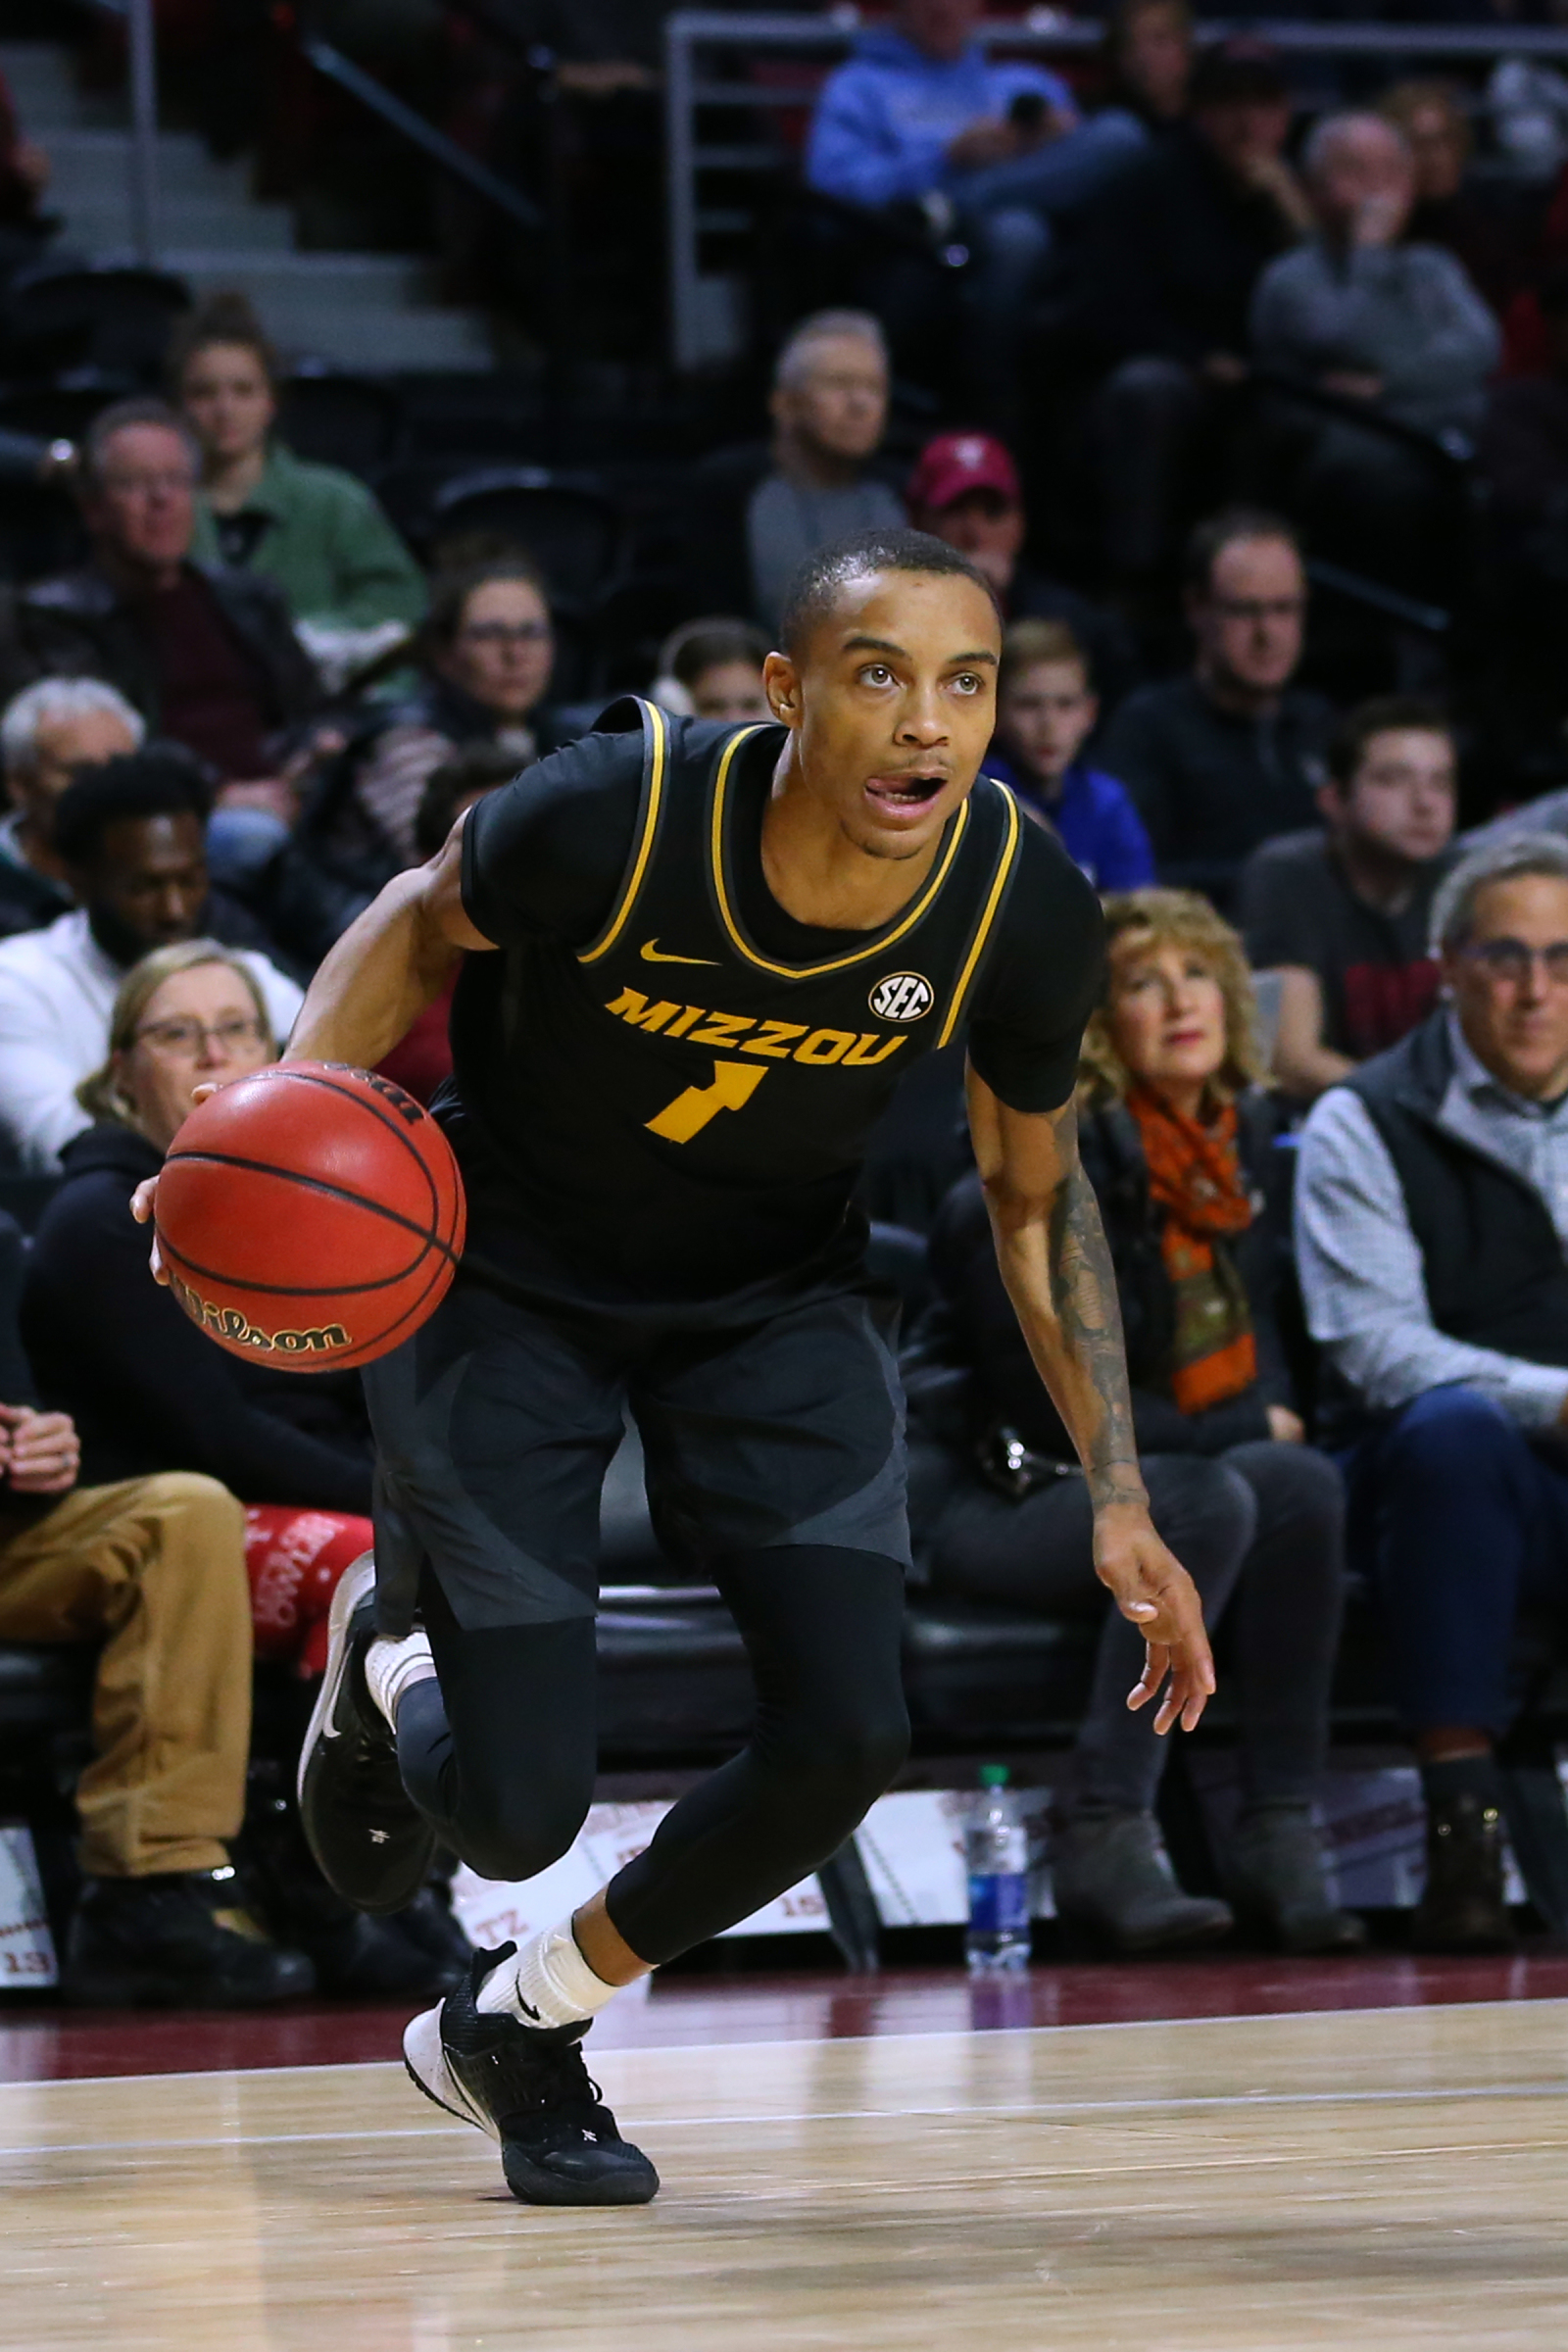 Mizzou Tigers top Ole Miss for second win in a row